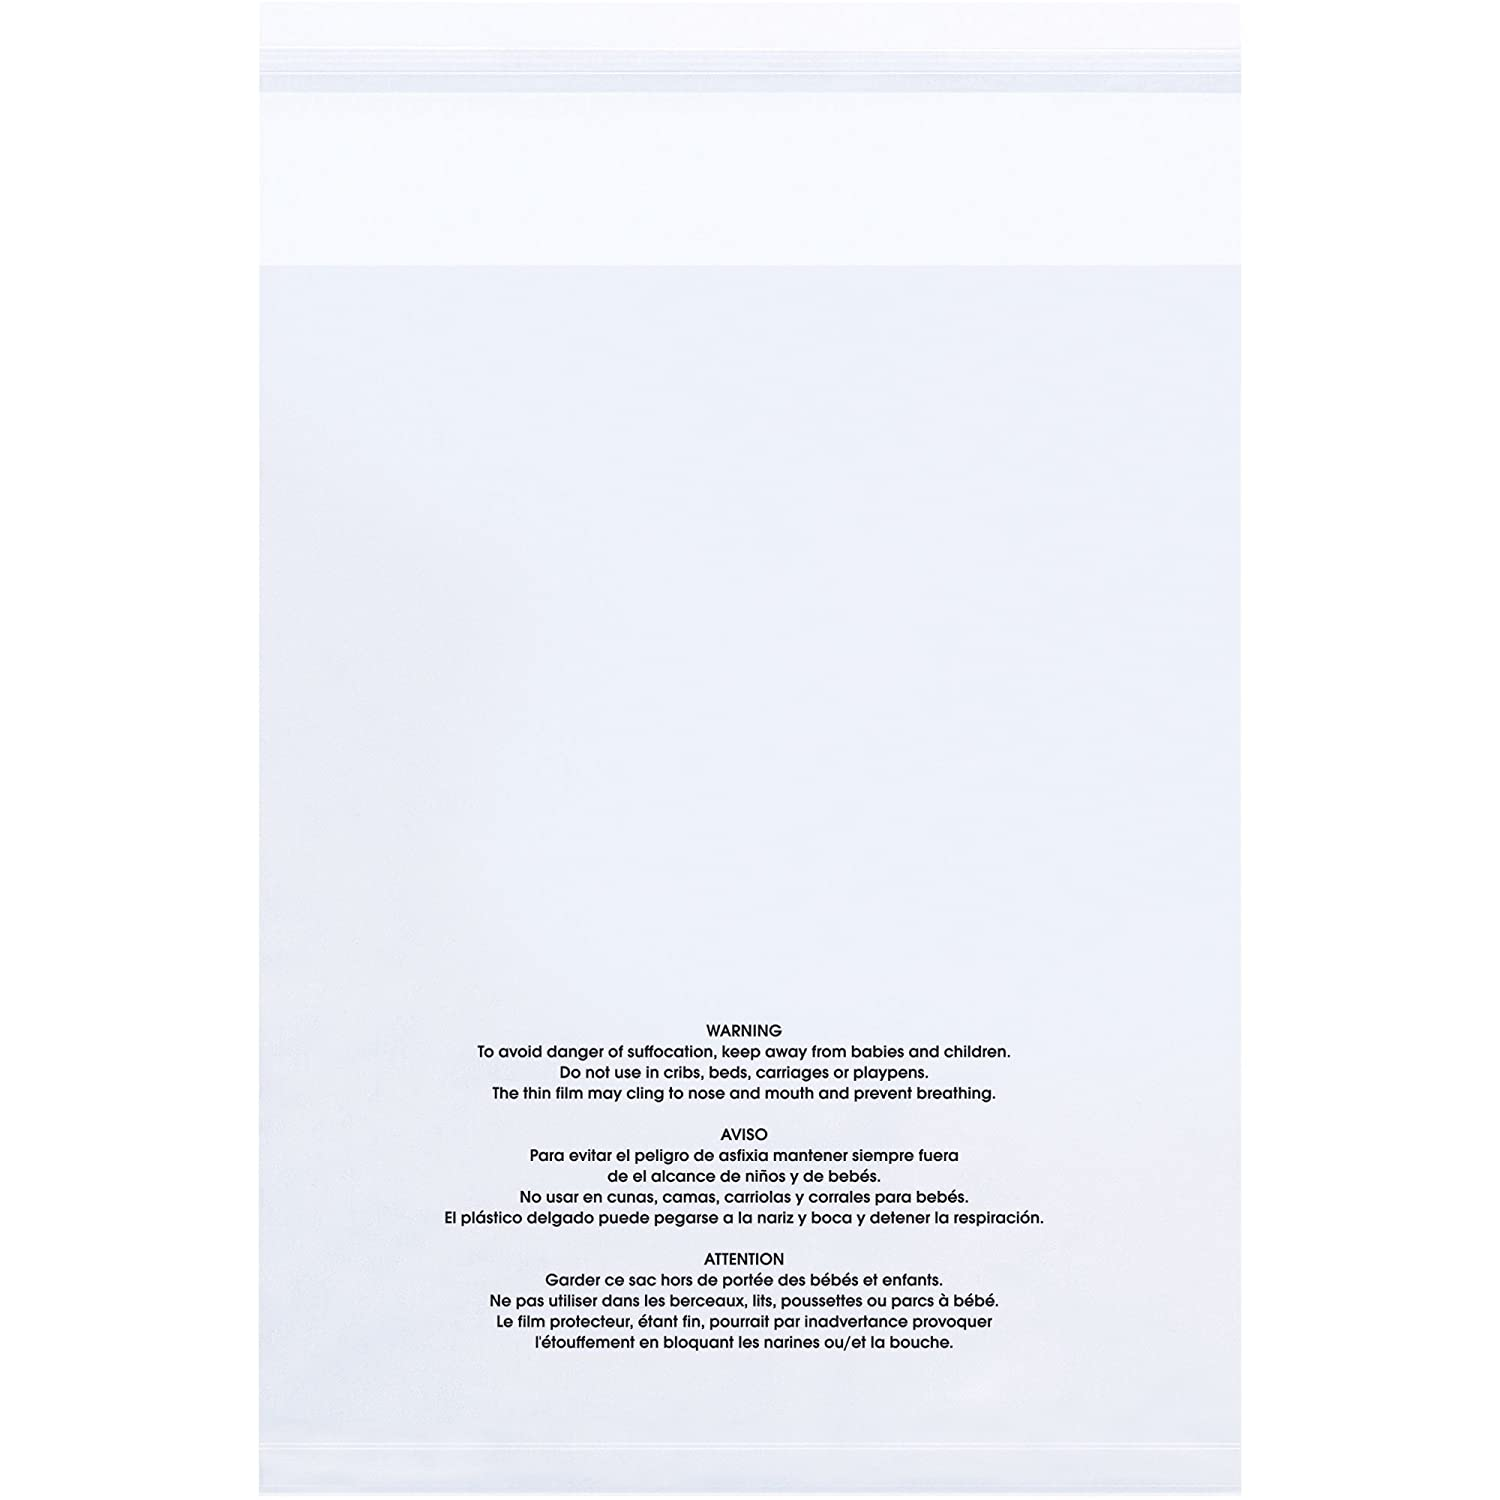 """Clear Resealable Poly Bags 18/"""" x 24/"""" with Suffocation Warning 1.5 Mil 500 pcs"""